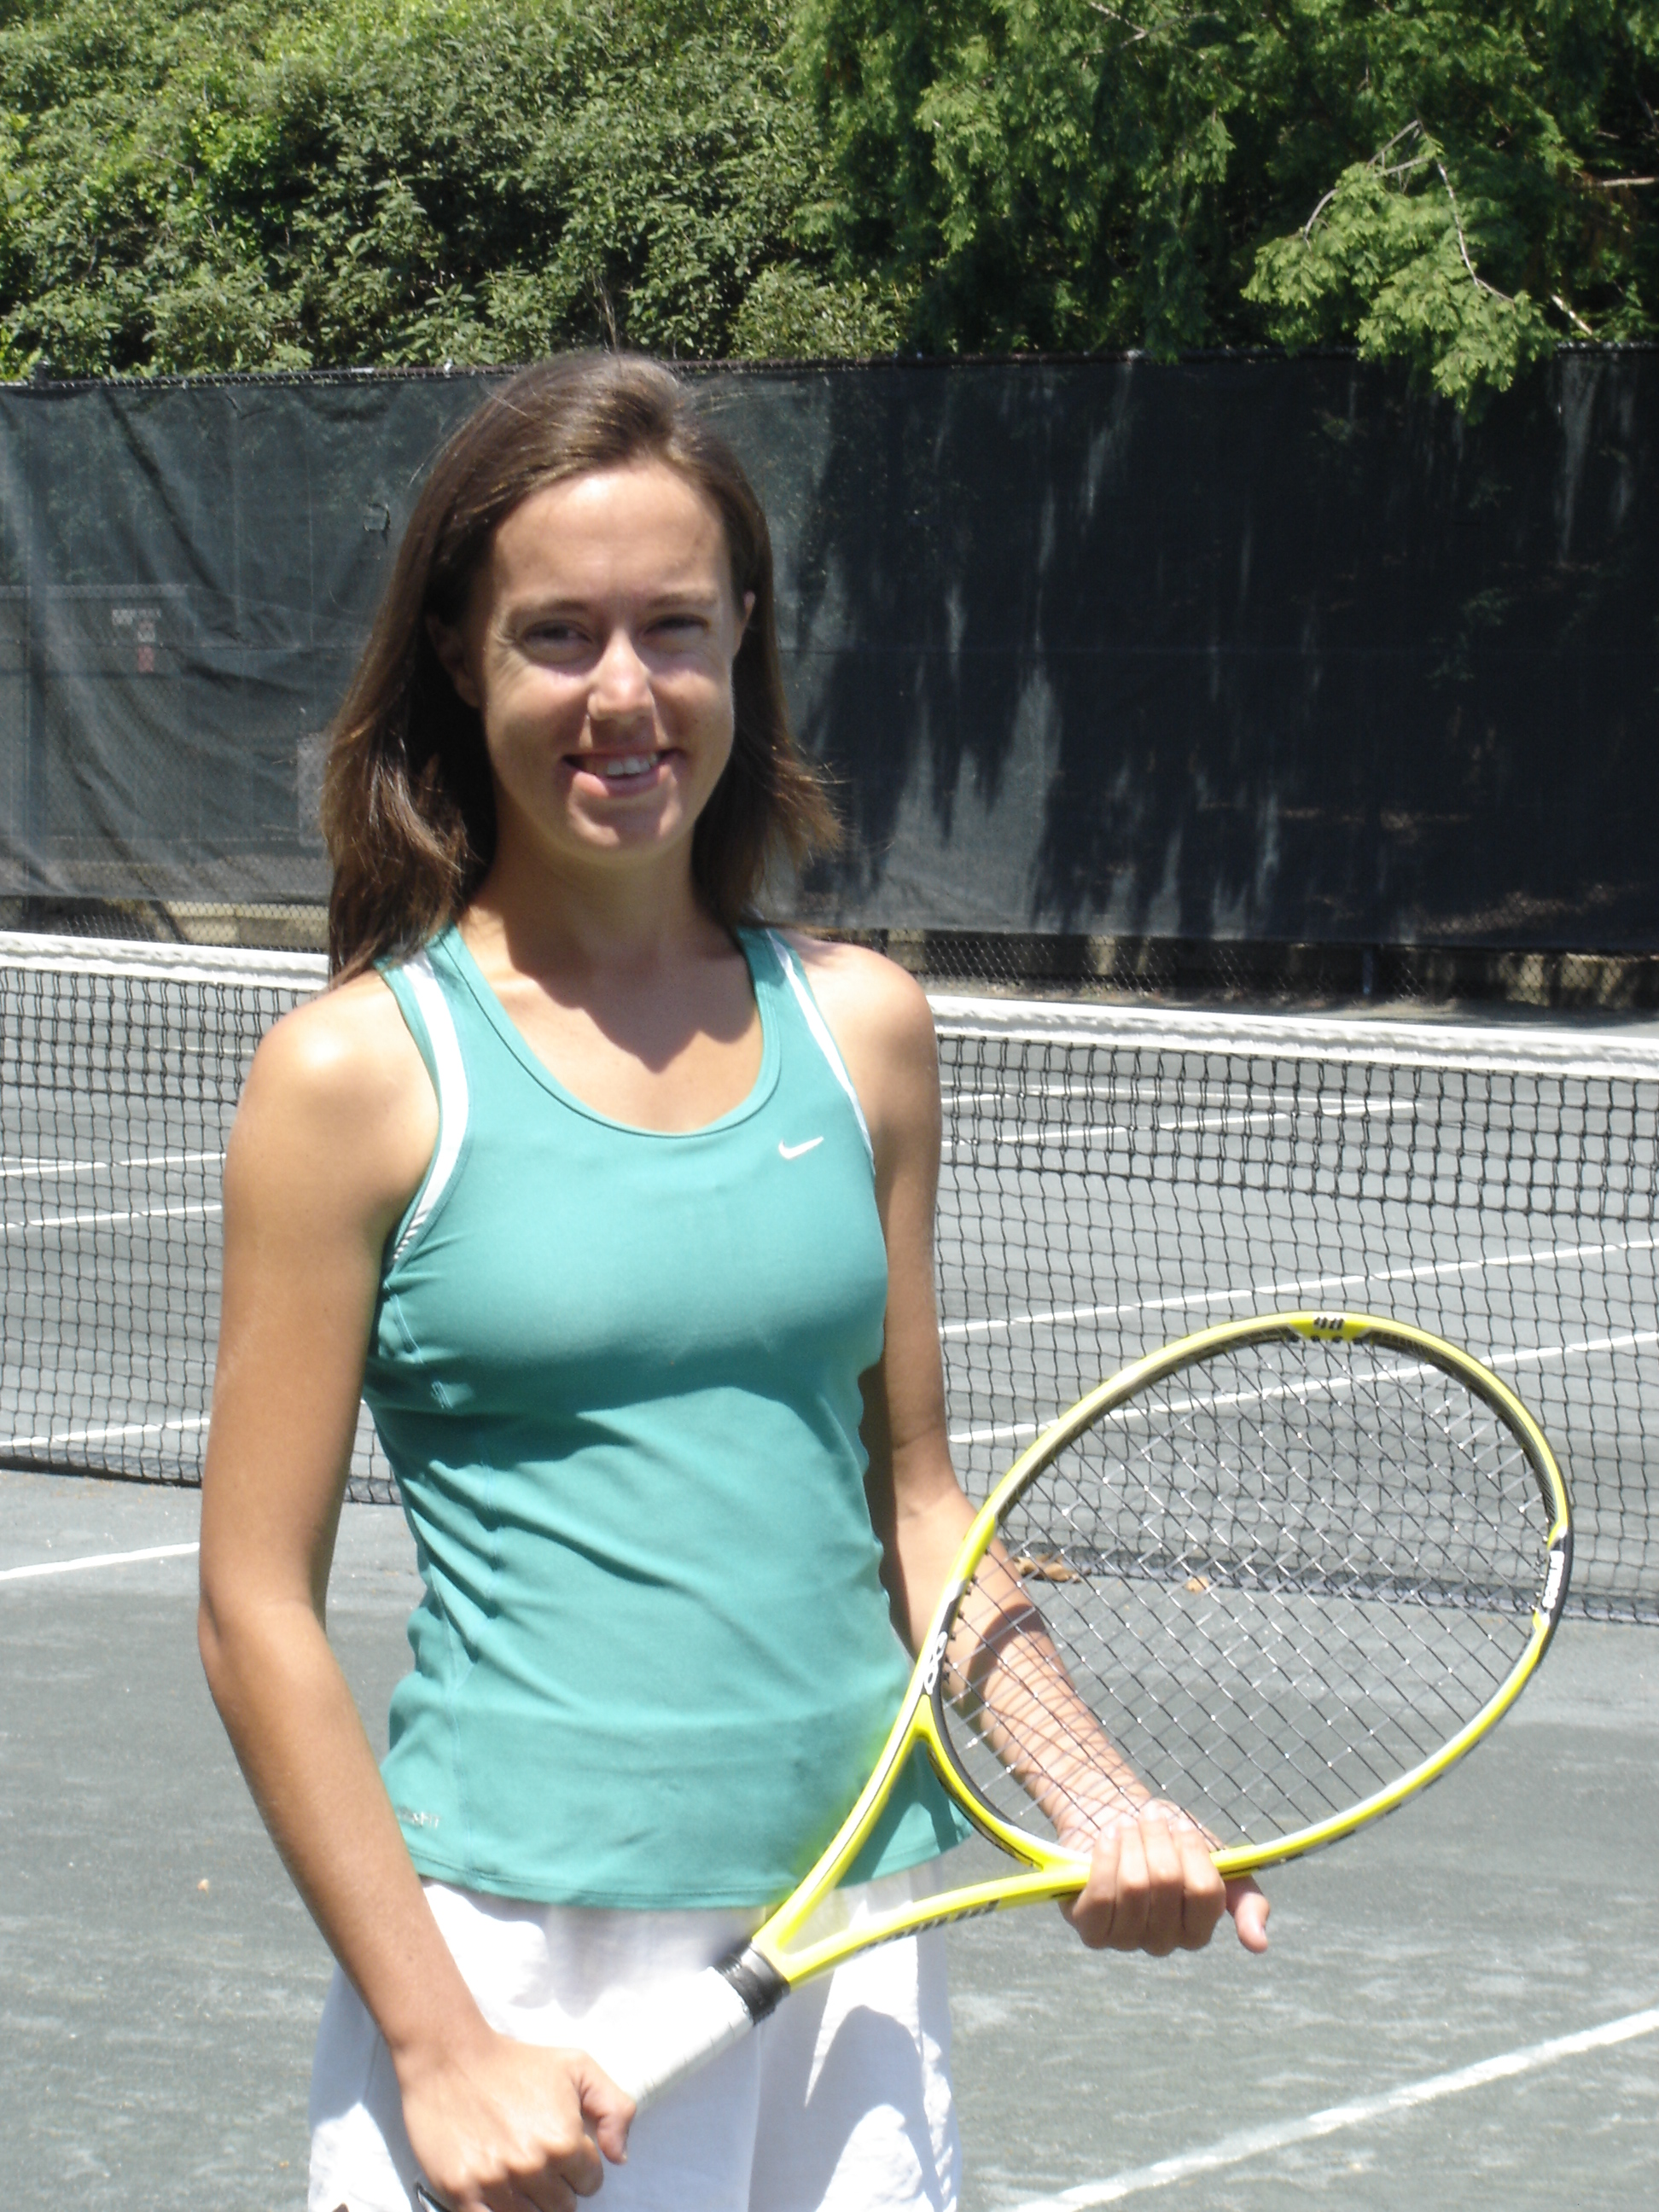 Tennis lessons and programs in St. Louis, Missouri